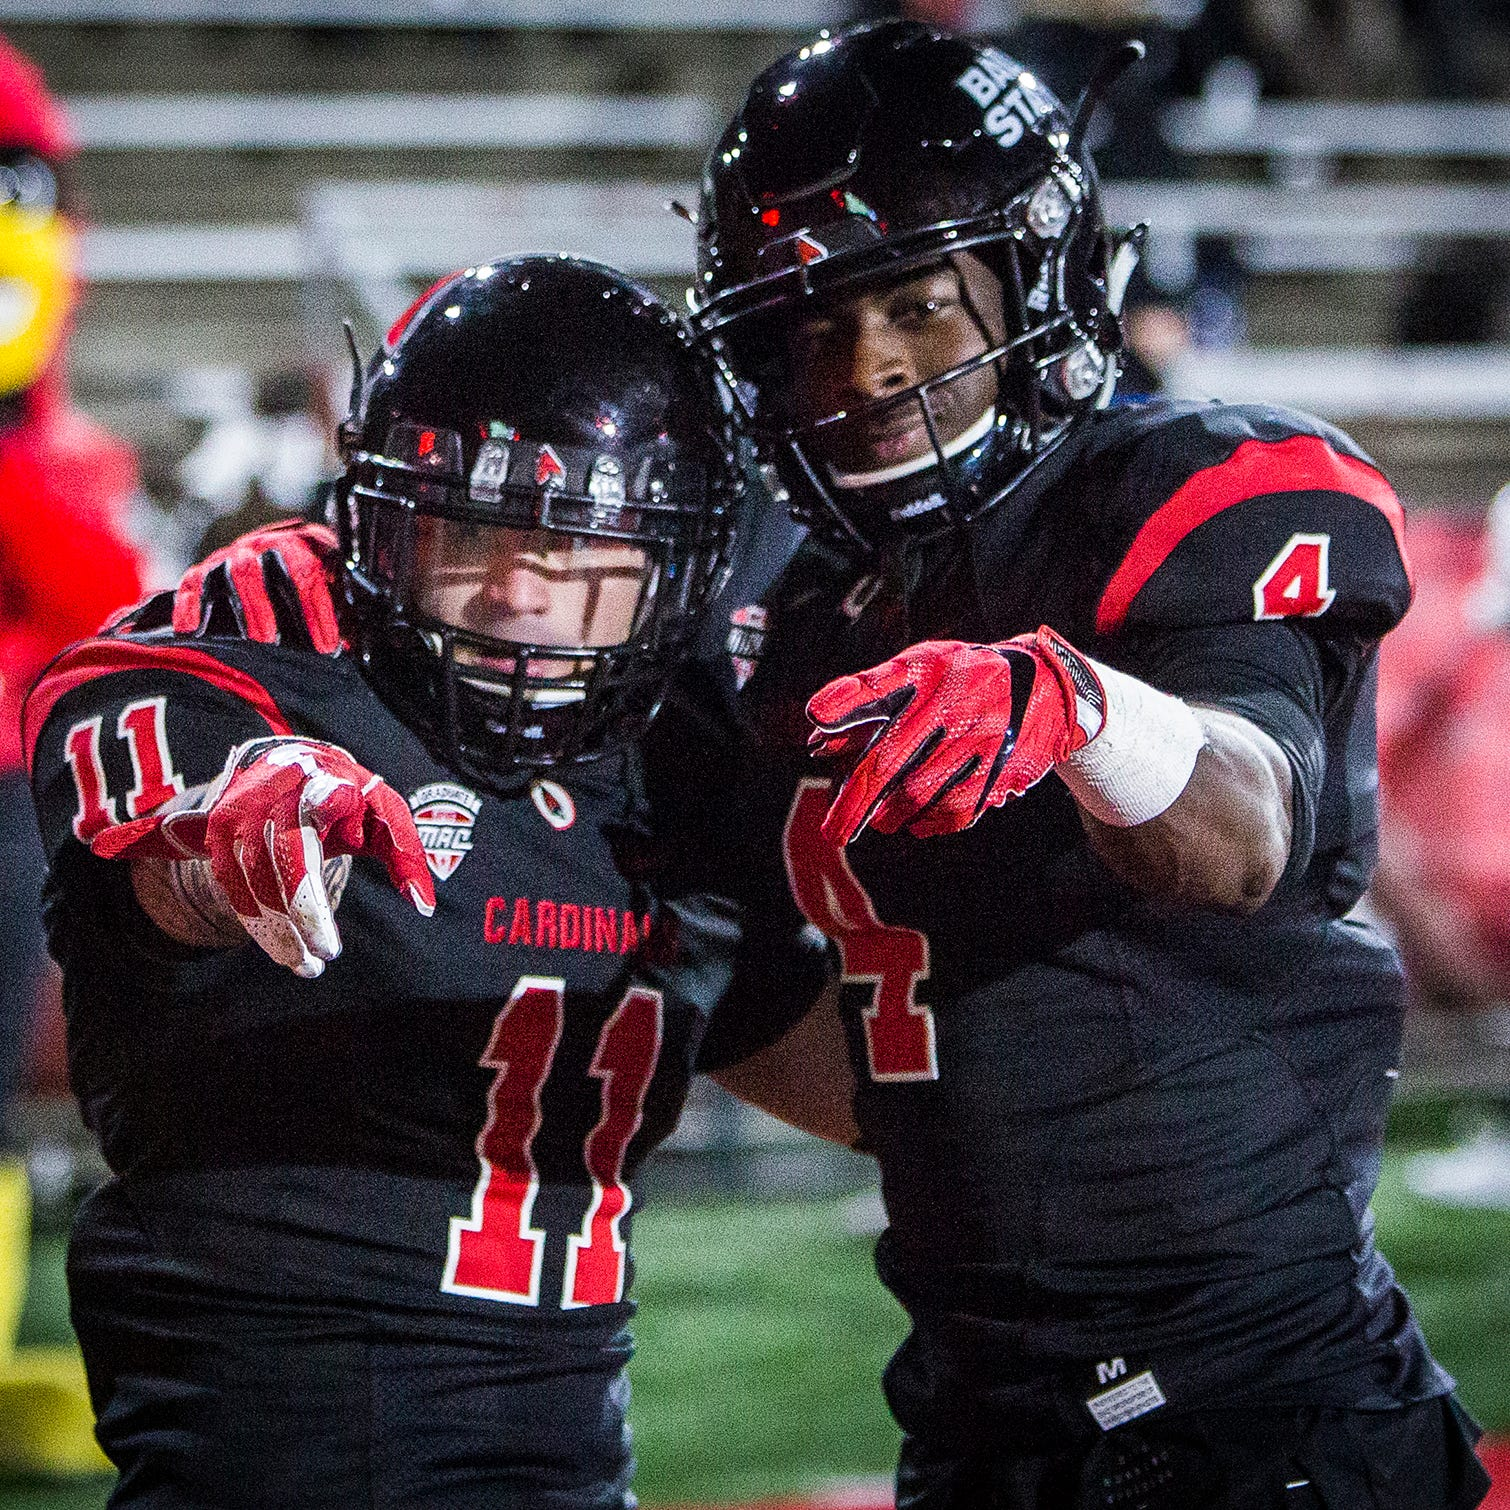 Ball State's Corey Lacanaria, left, and Malik Dunner celebrate a touchdown against Western Michigan during their game at Scheumann Stadium Tuesday, Nov. 13, 2018.